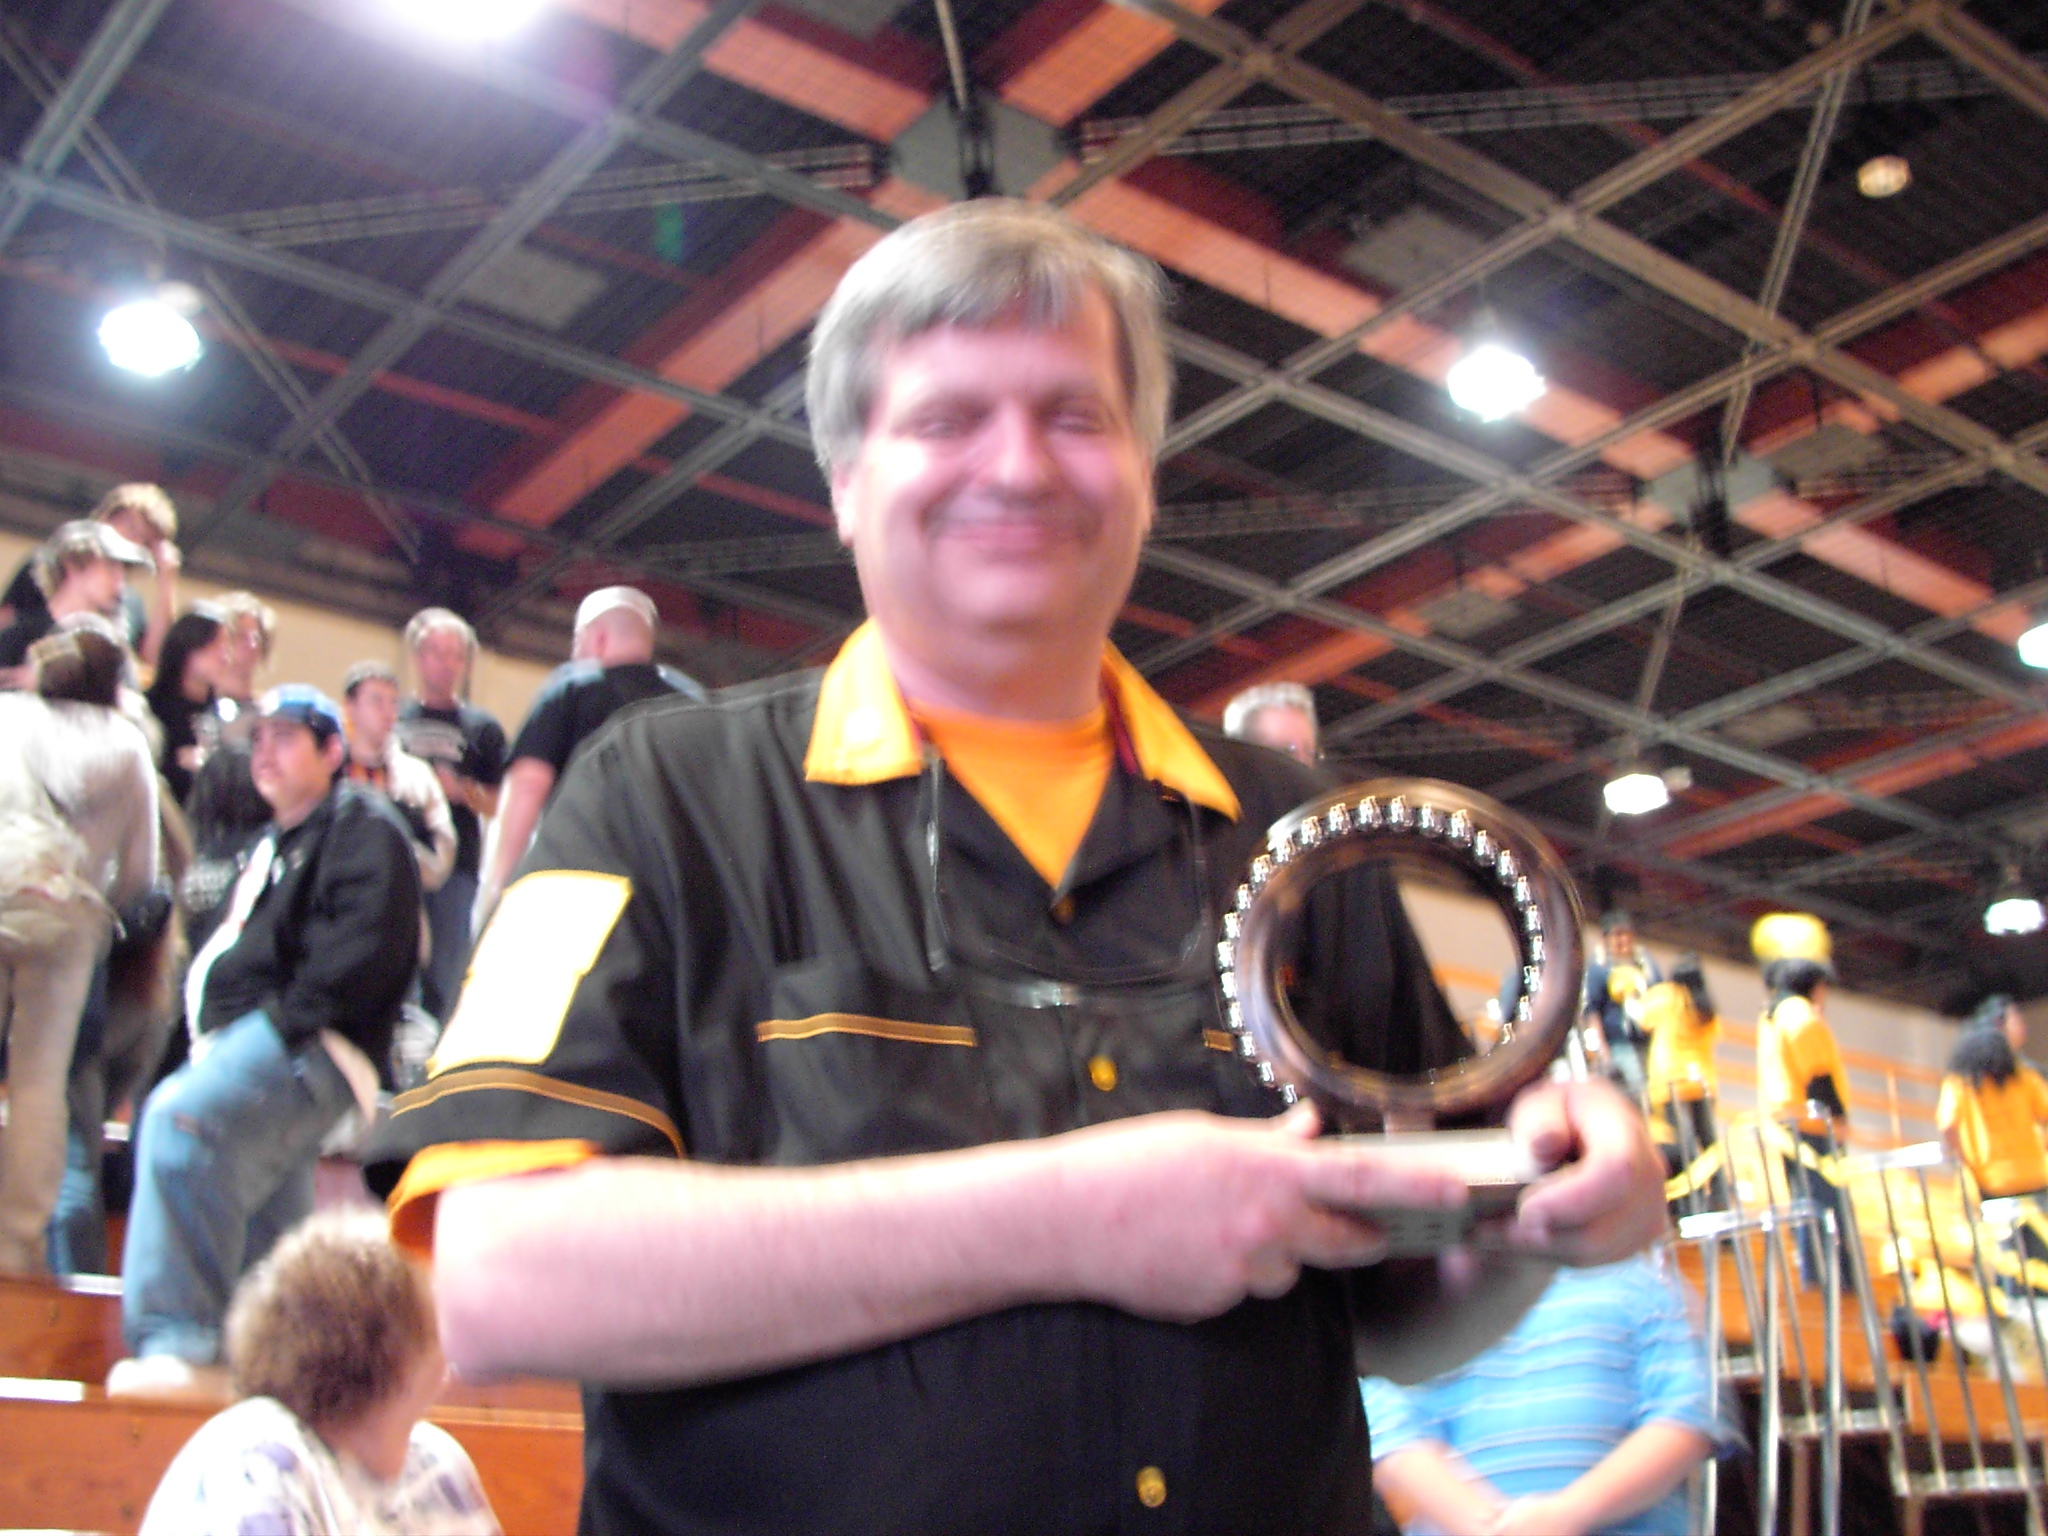 2006 FIRST Sacramento Regional Woodie Flowers Award Recipient - Warren Hildebrandt